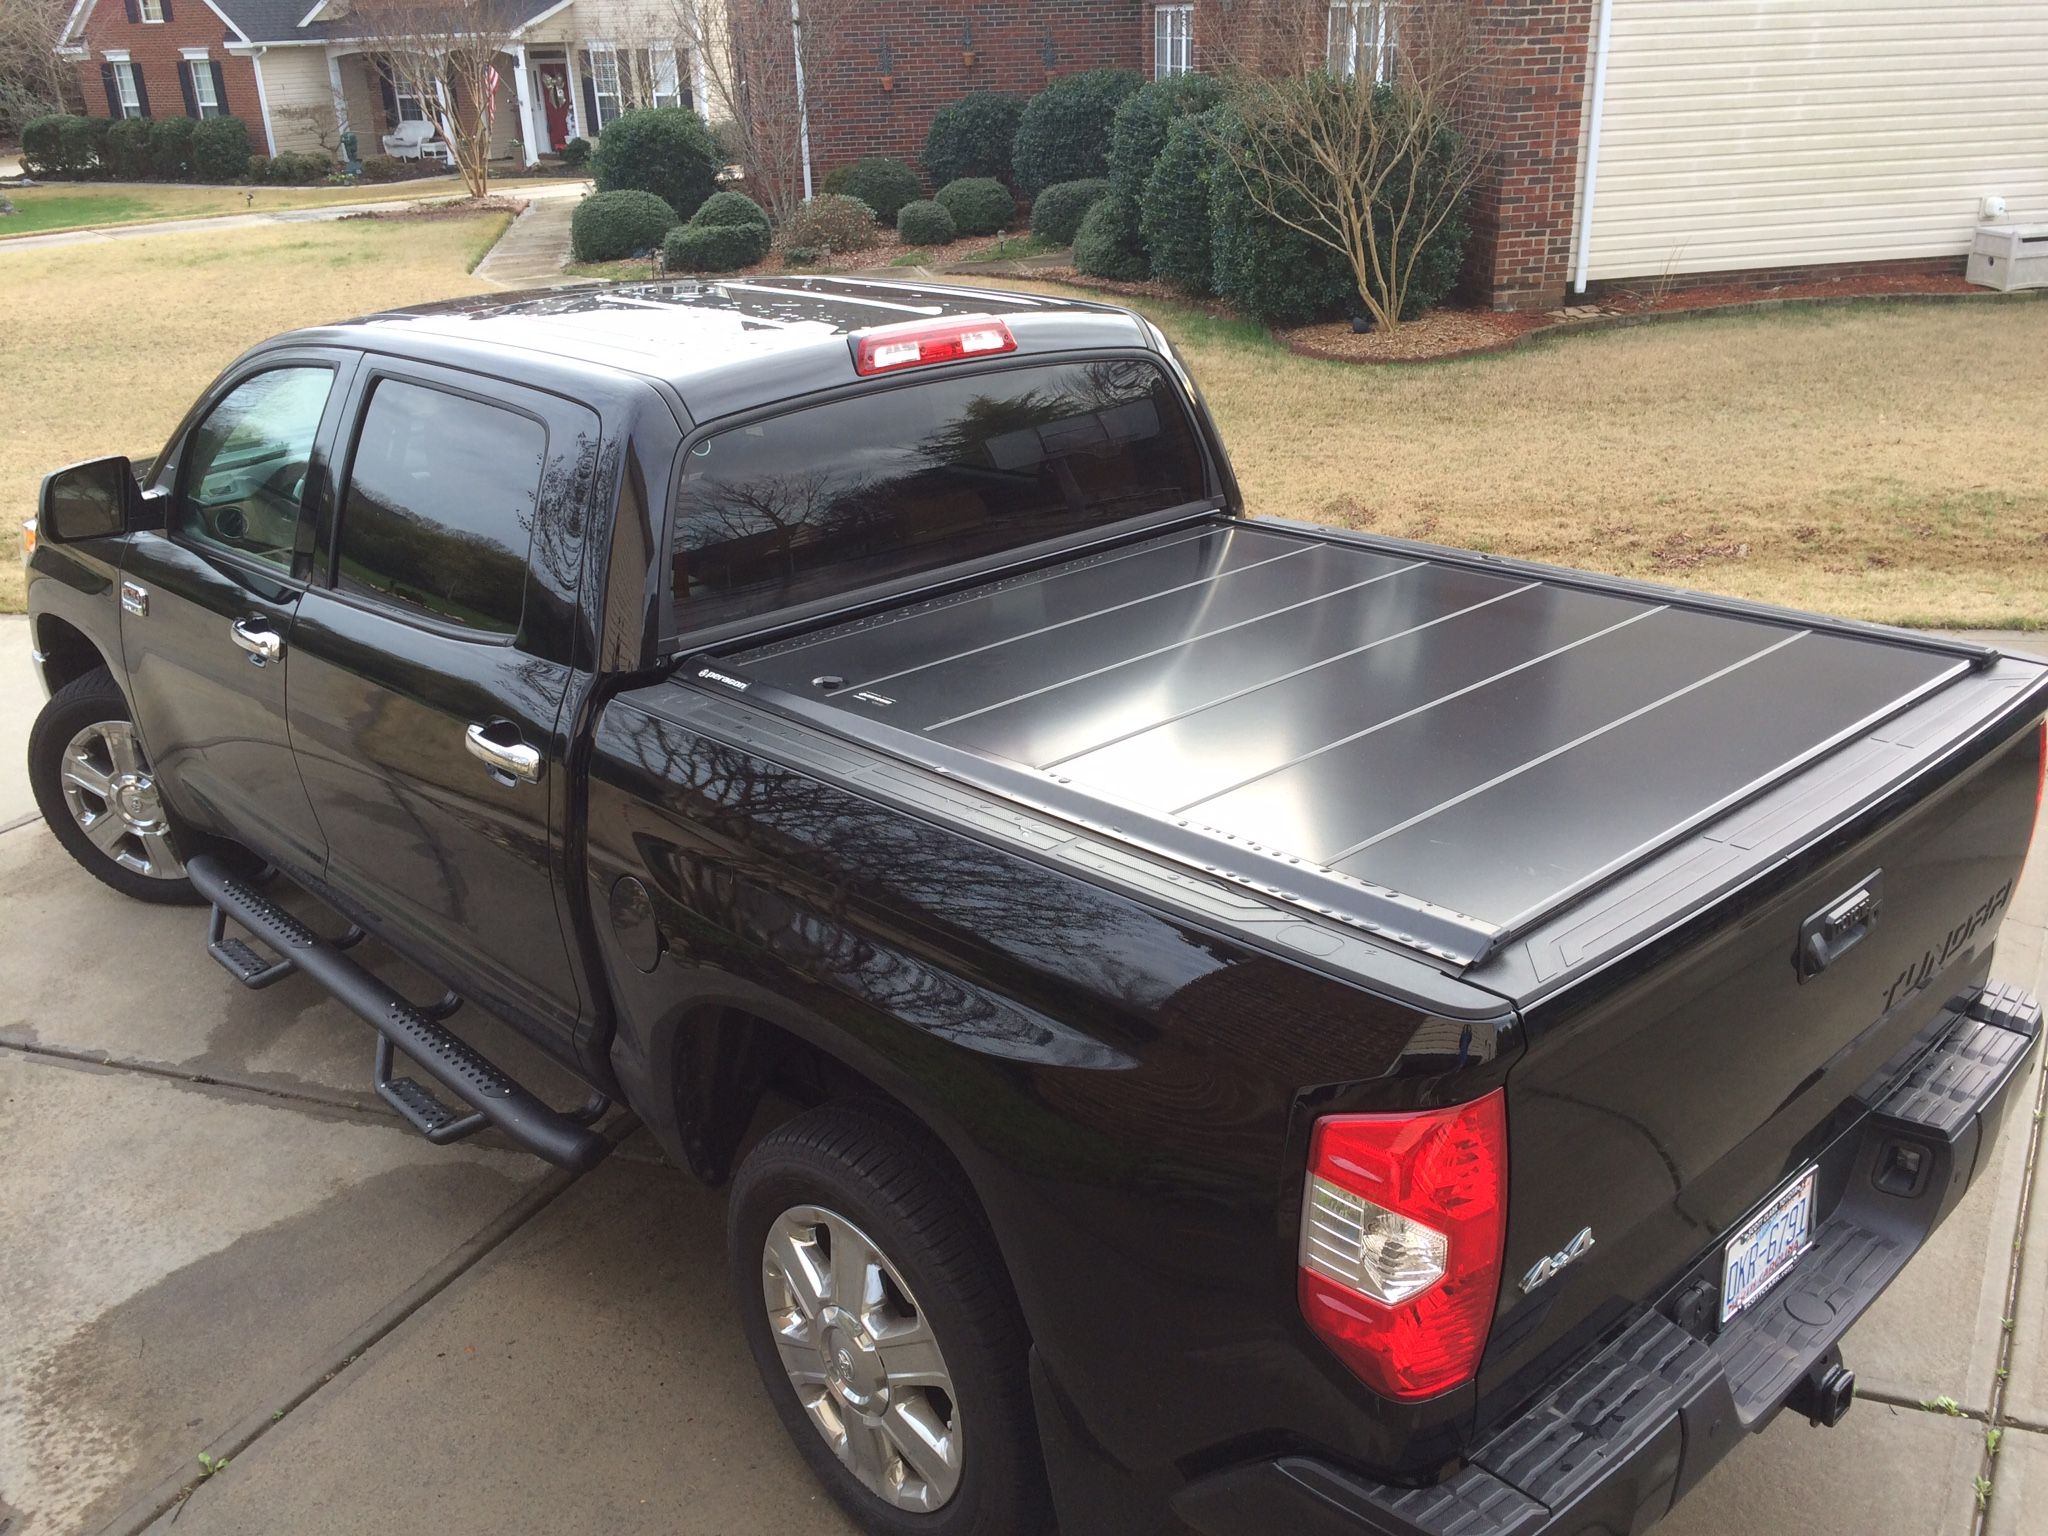 AMDA Truck bed covers, Truck bed, Pickup truck bed covers